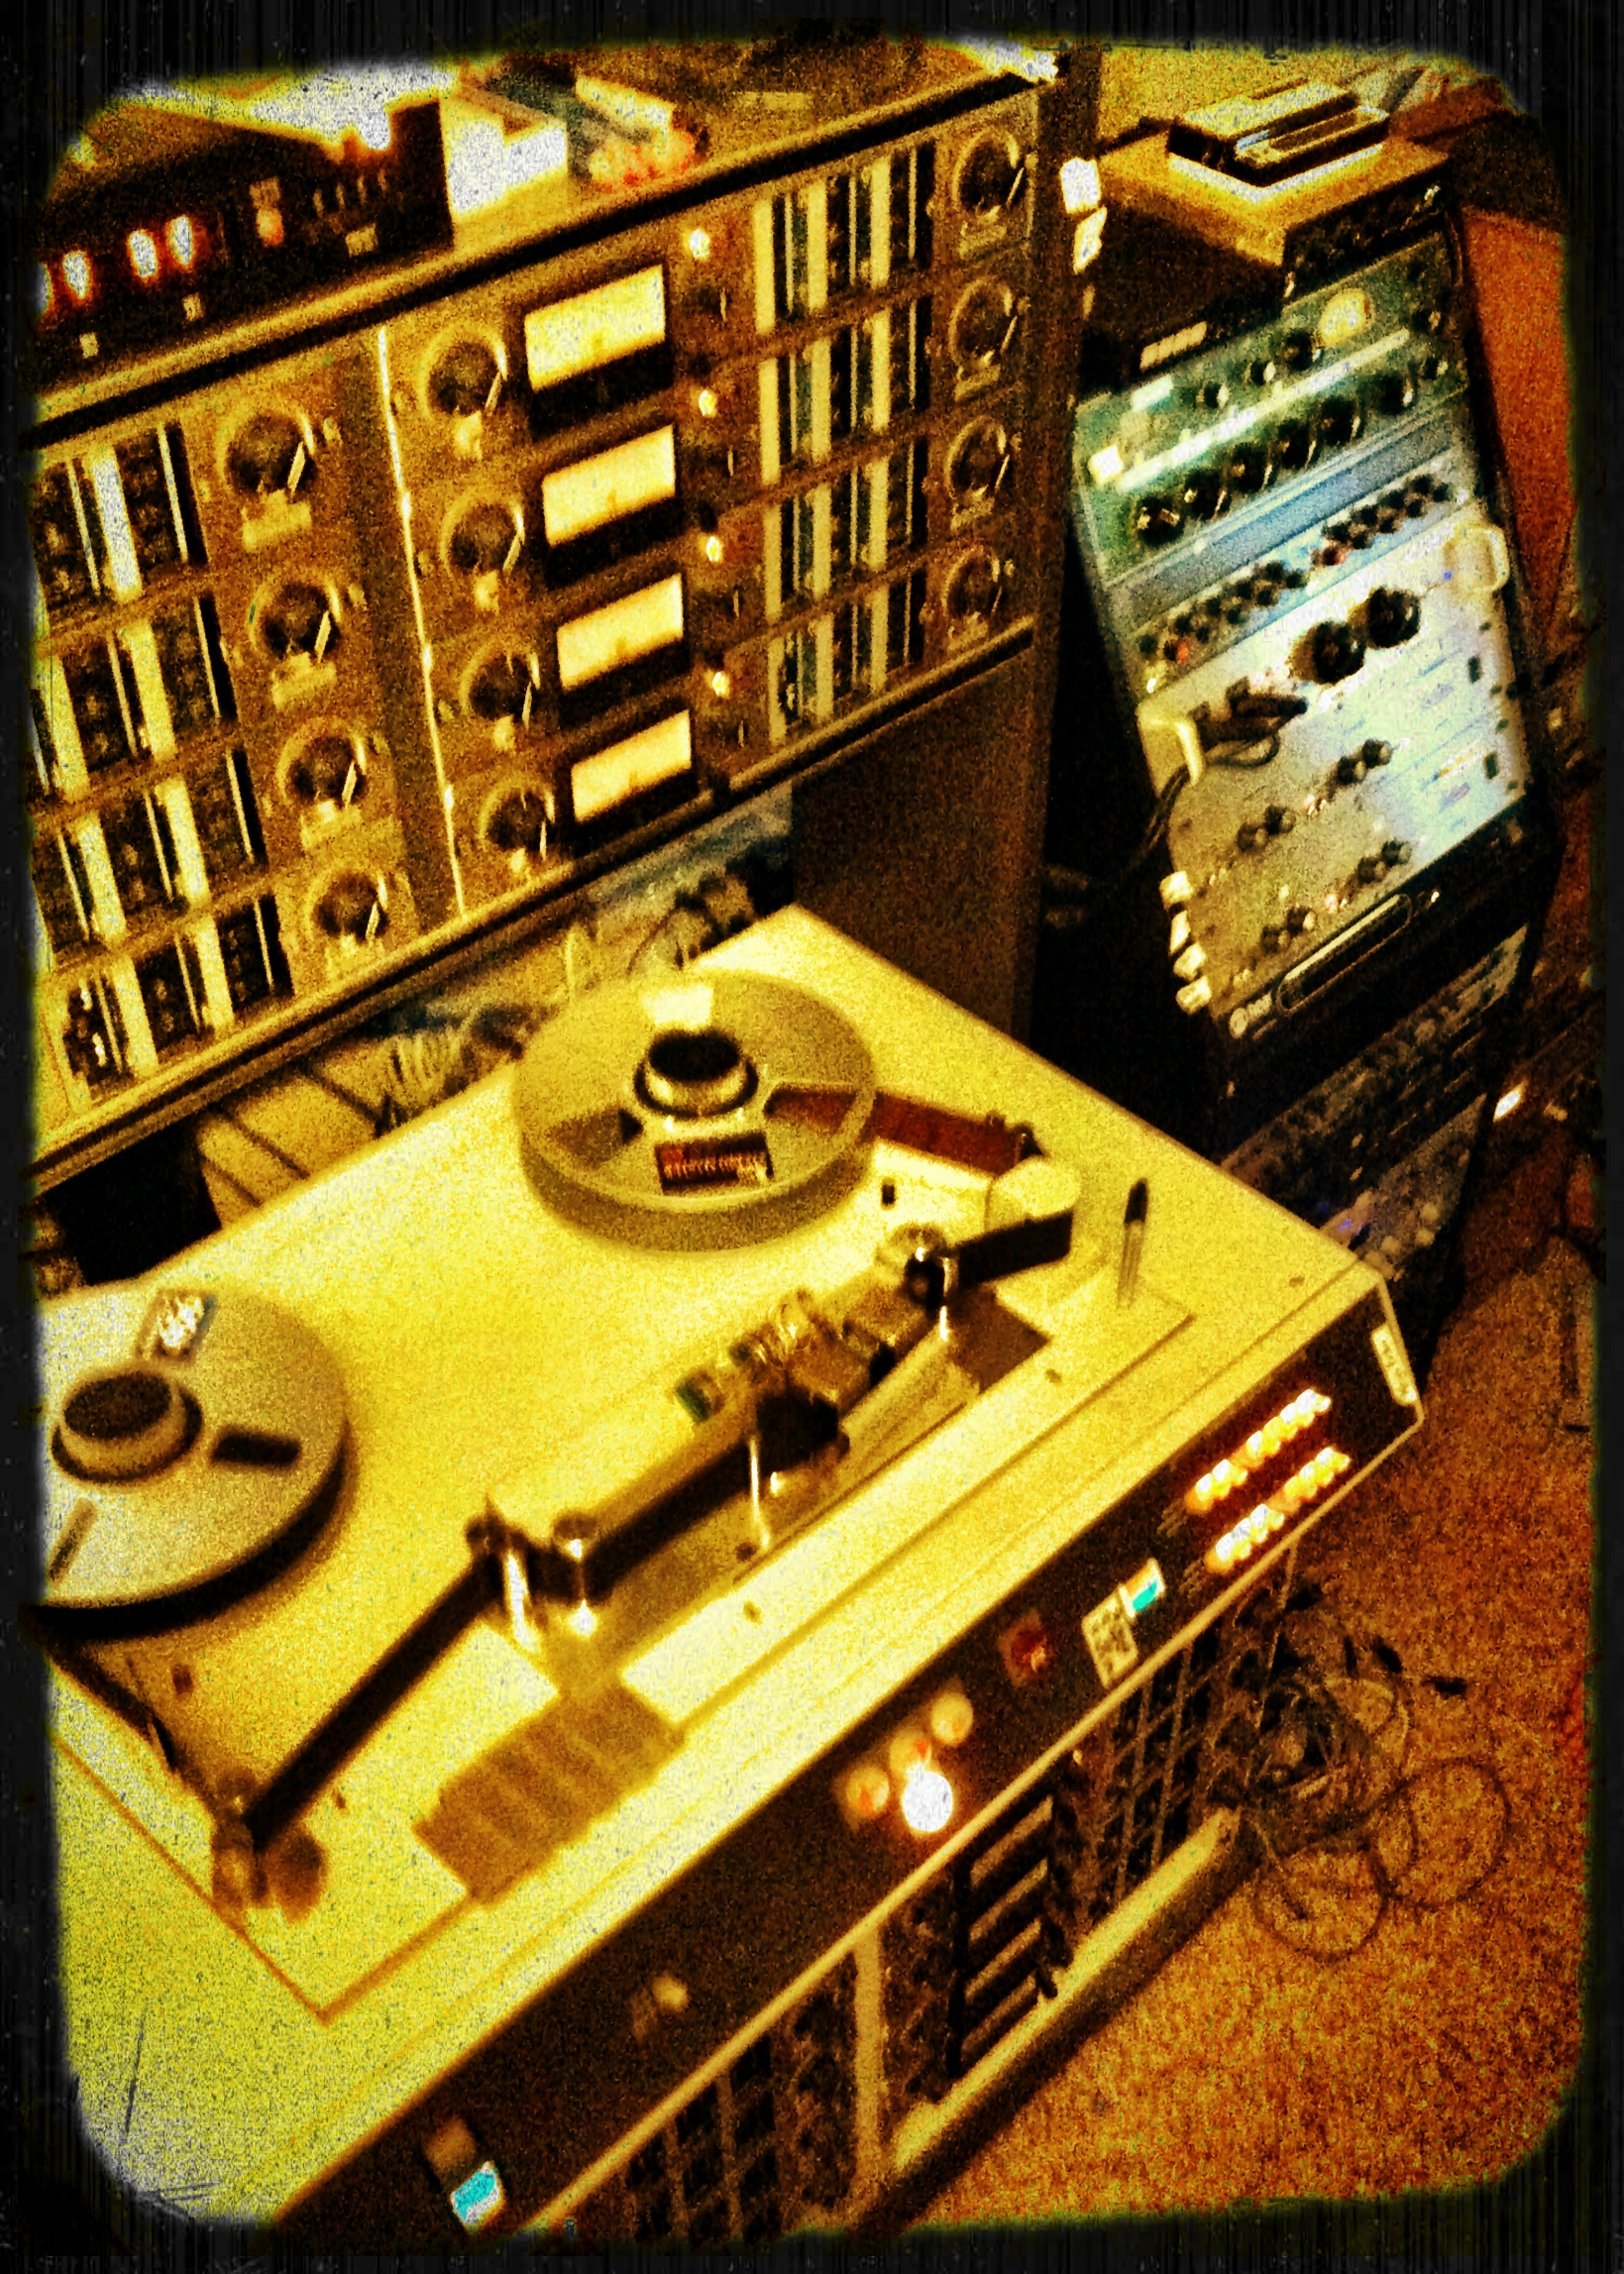 Tape Machine Paradox